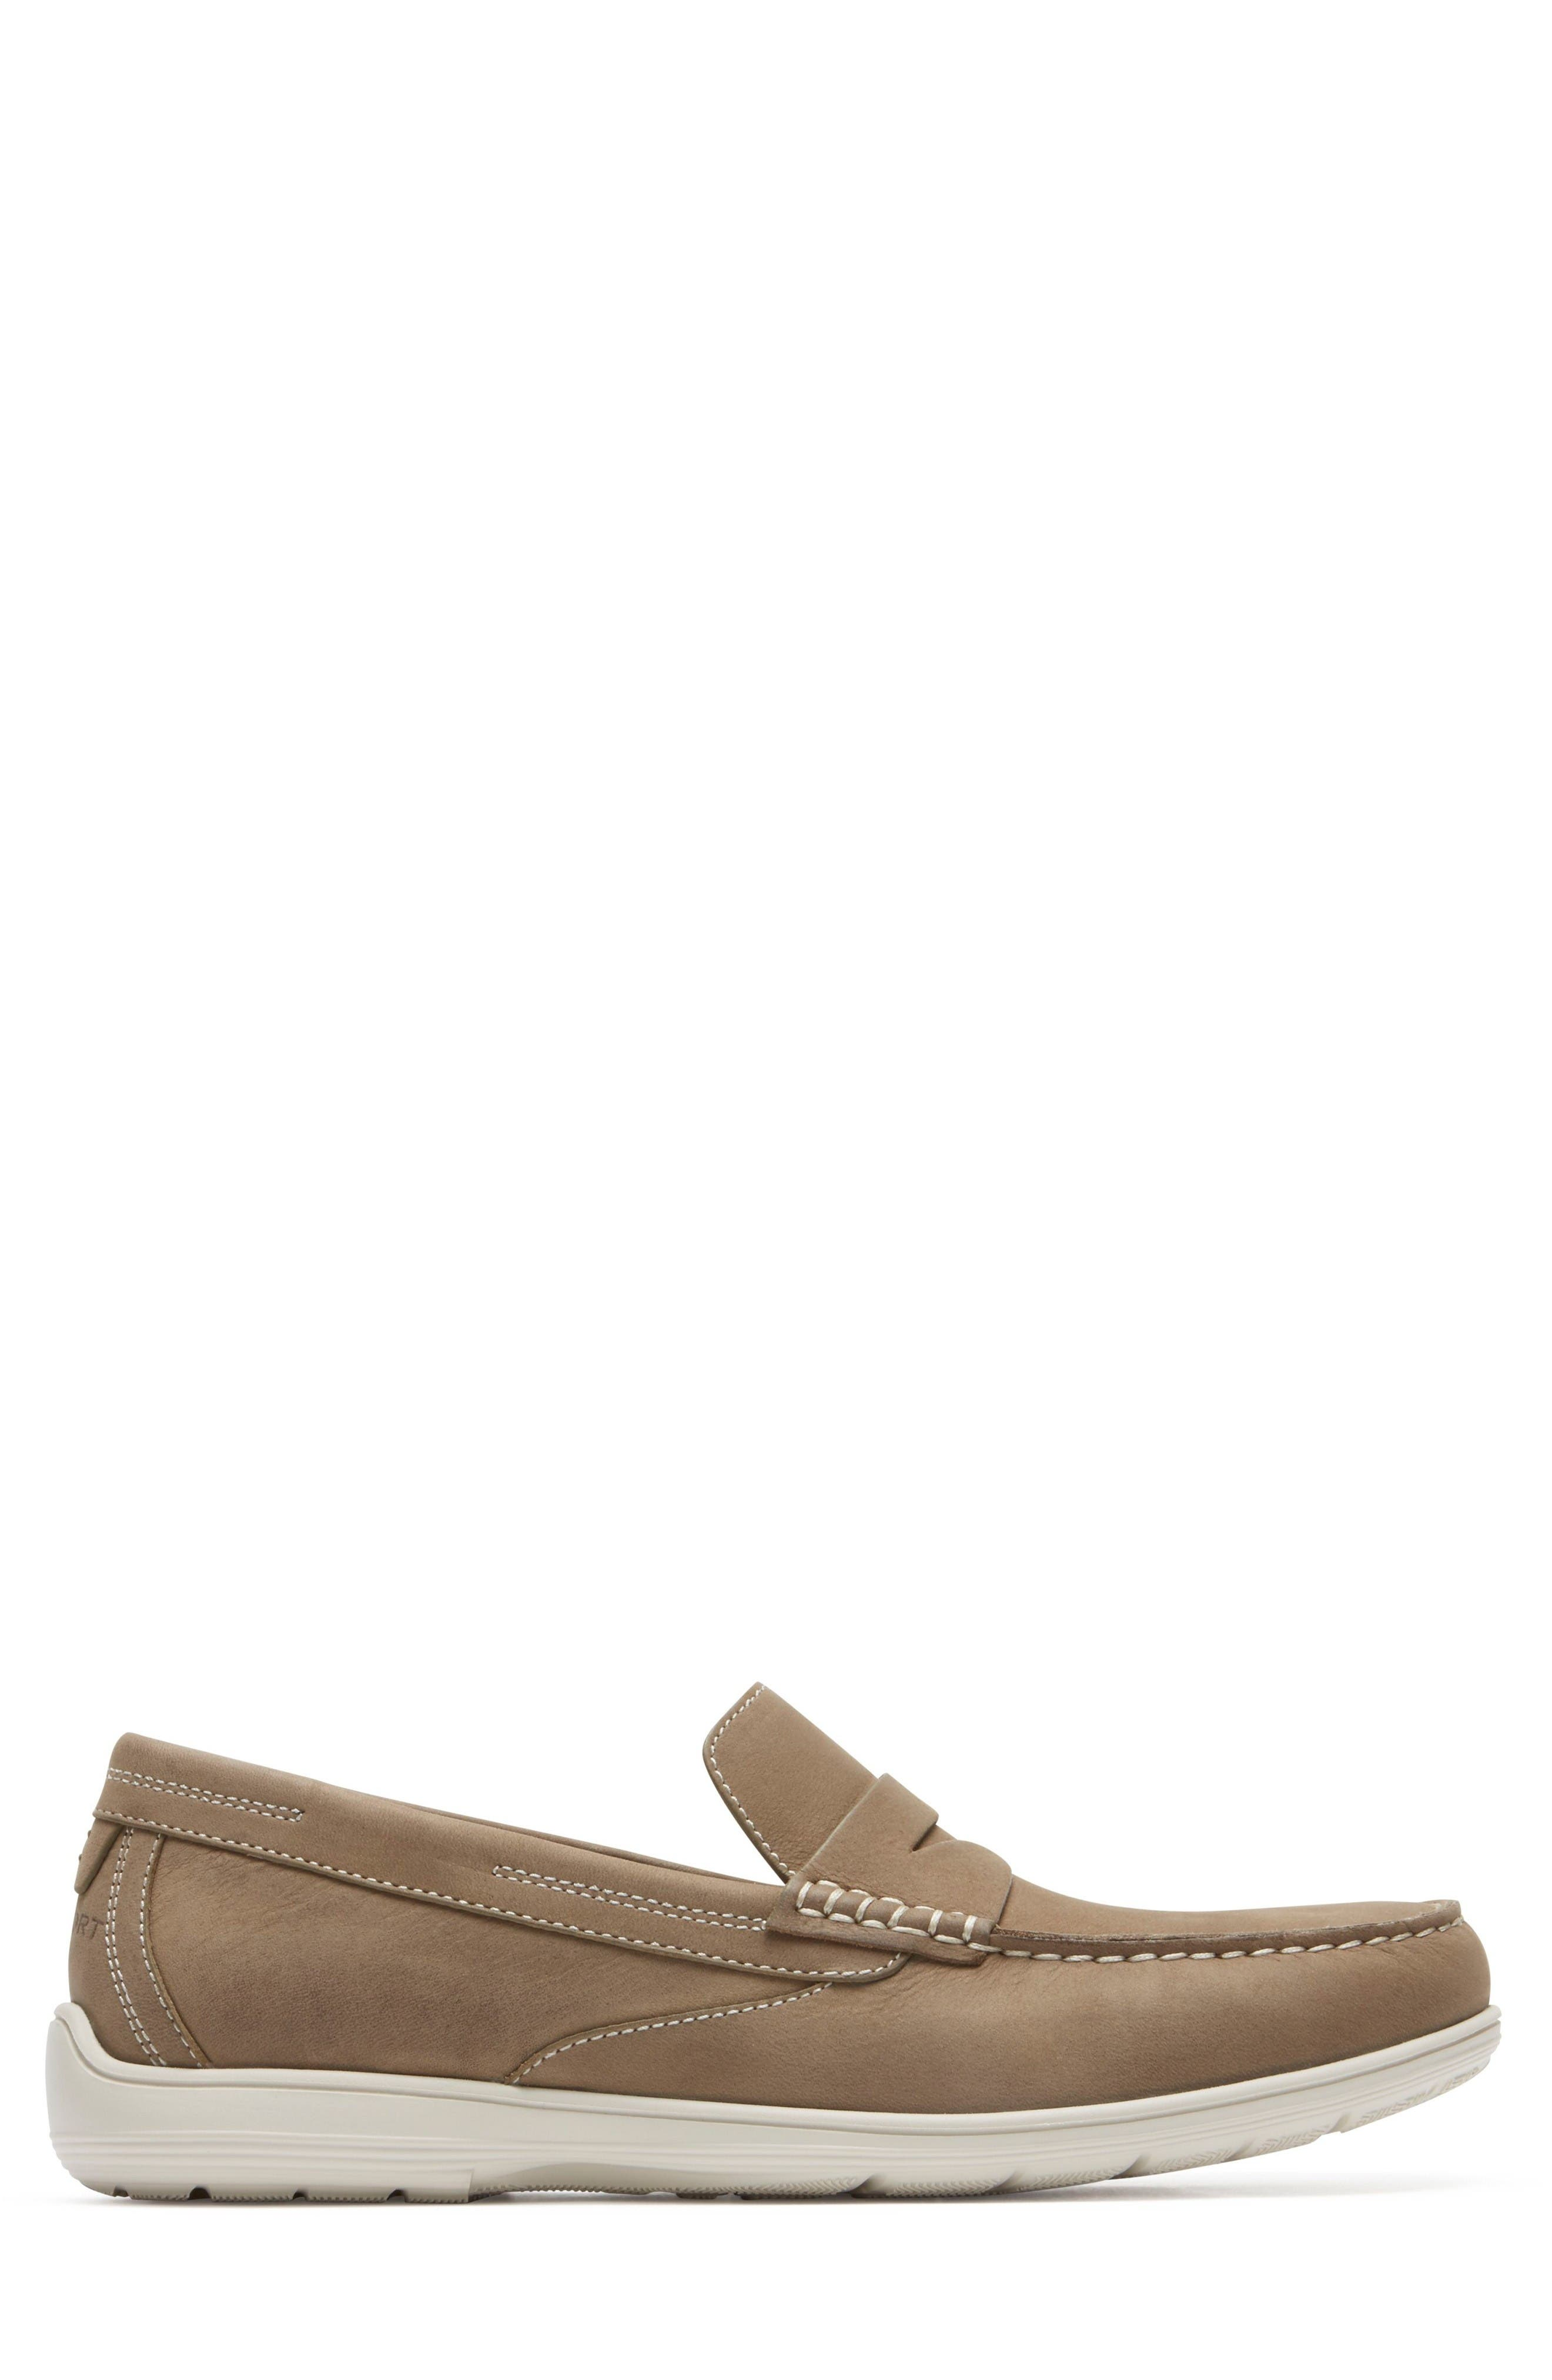 Alternate Image 3  - Rockport Total Motion Penny Loafer (Men)